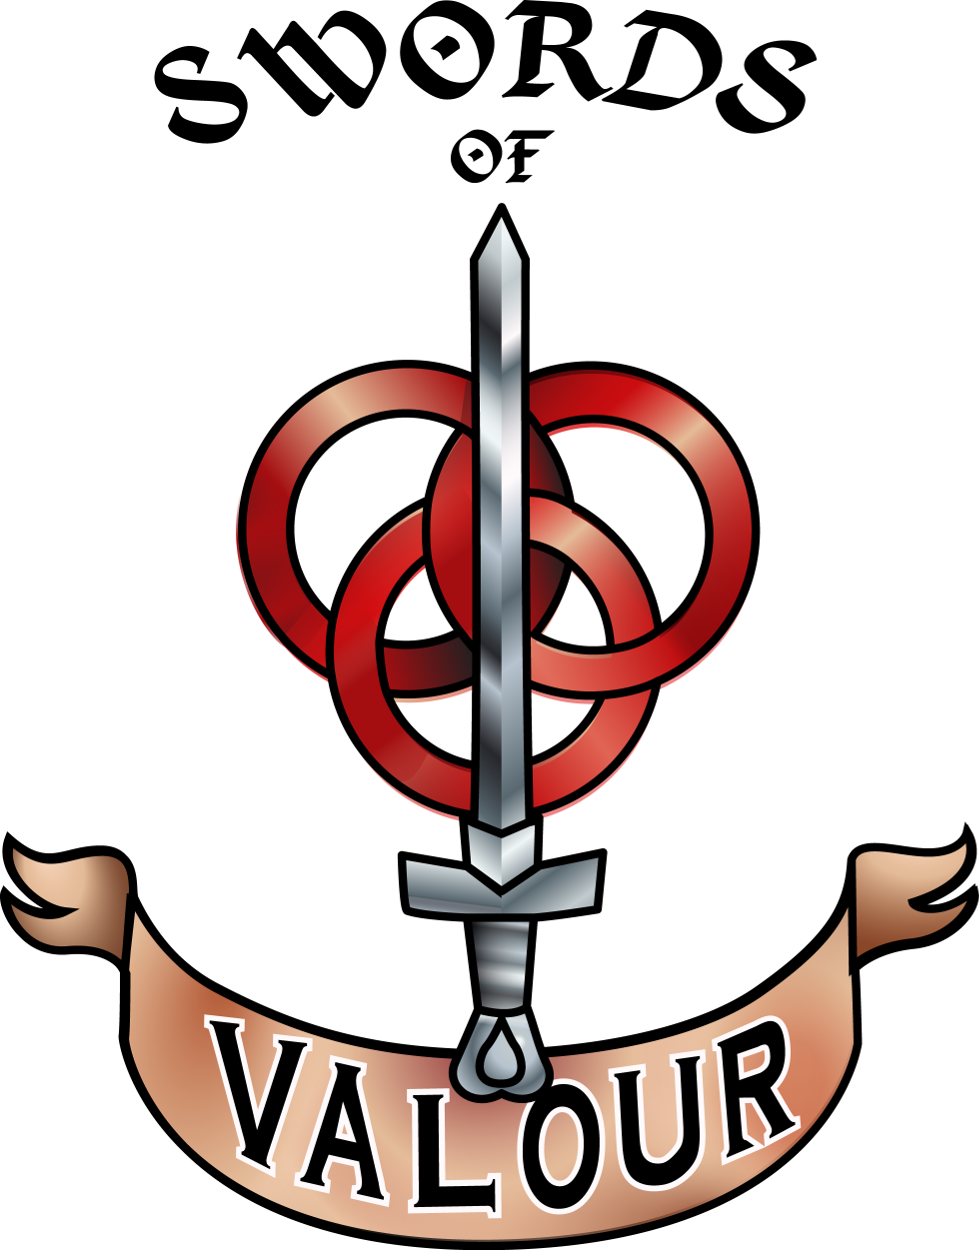 Swords of Valour